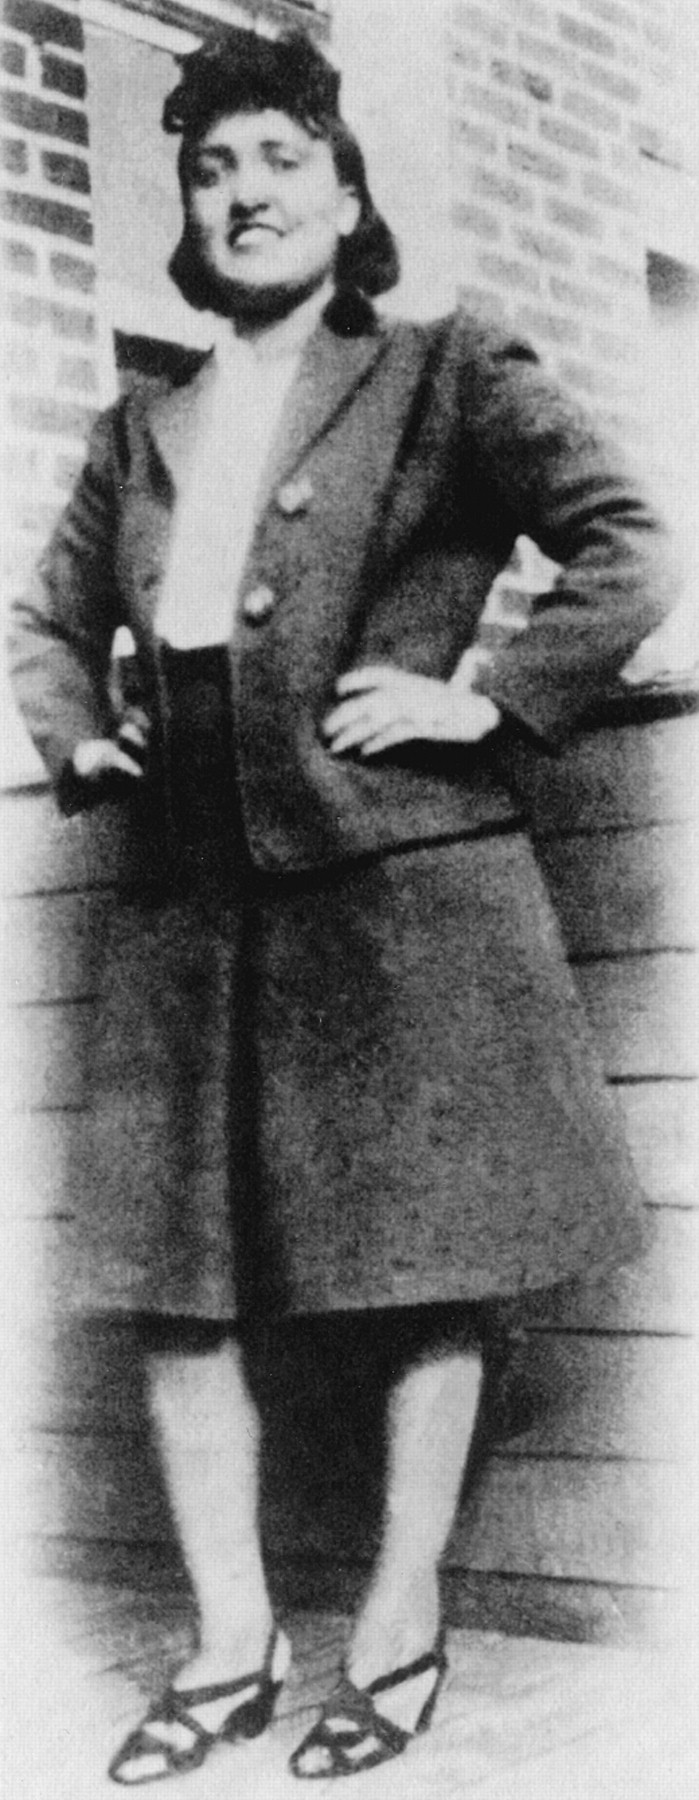 Image shows a black and white photograph of a woman smiling, with her hands on her hips. She is African American, and dressed in the style of the 1940s in a skirt and blazer.